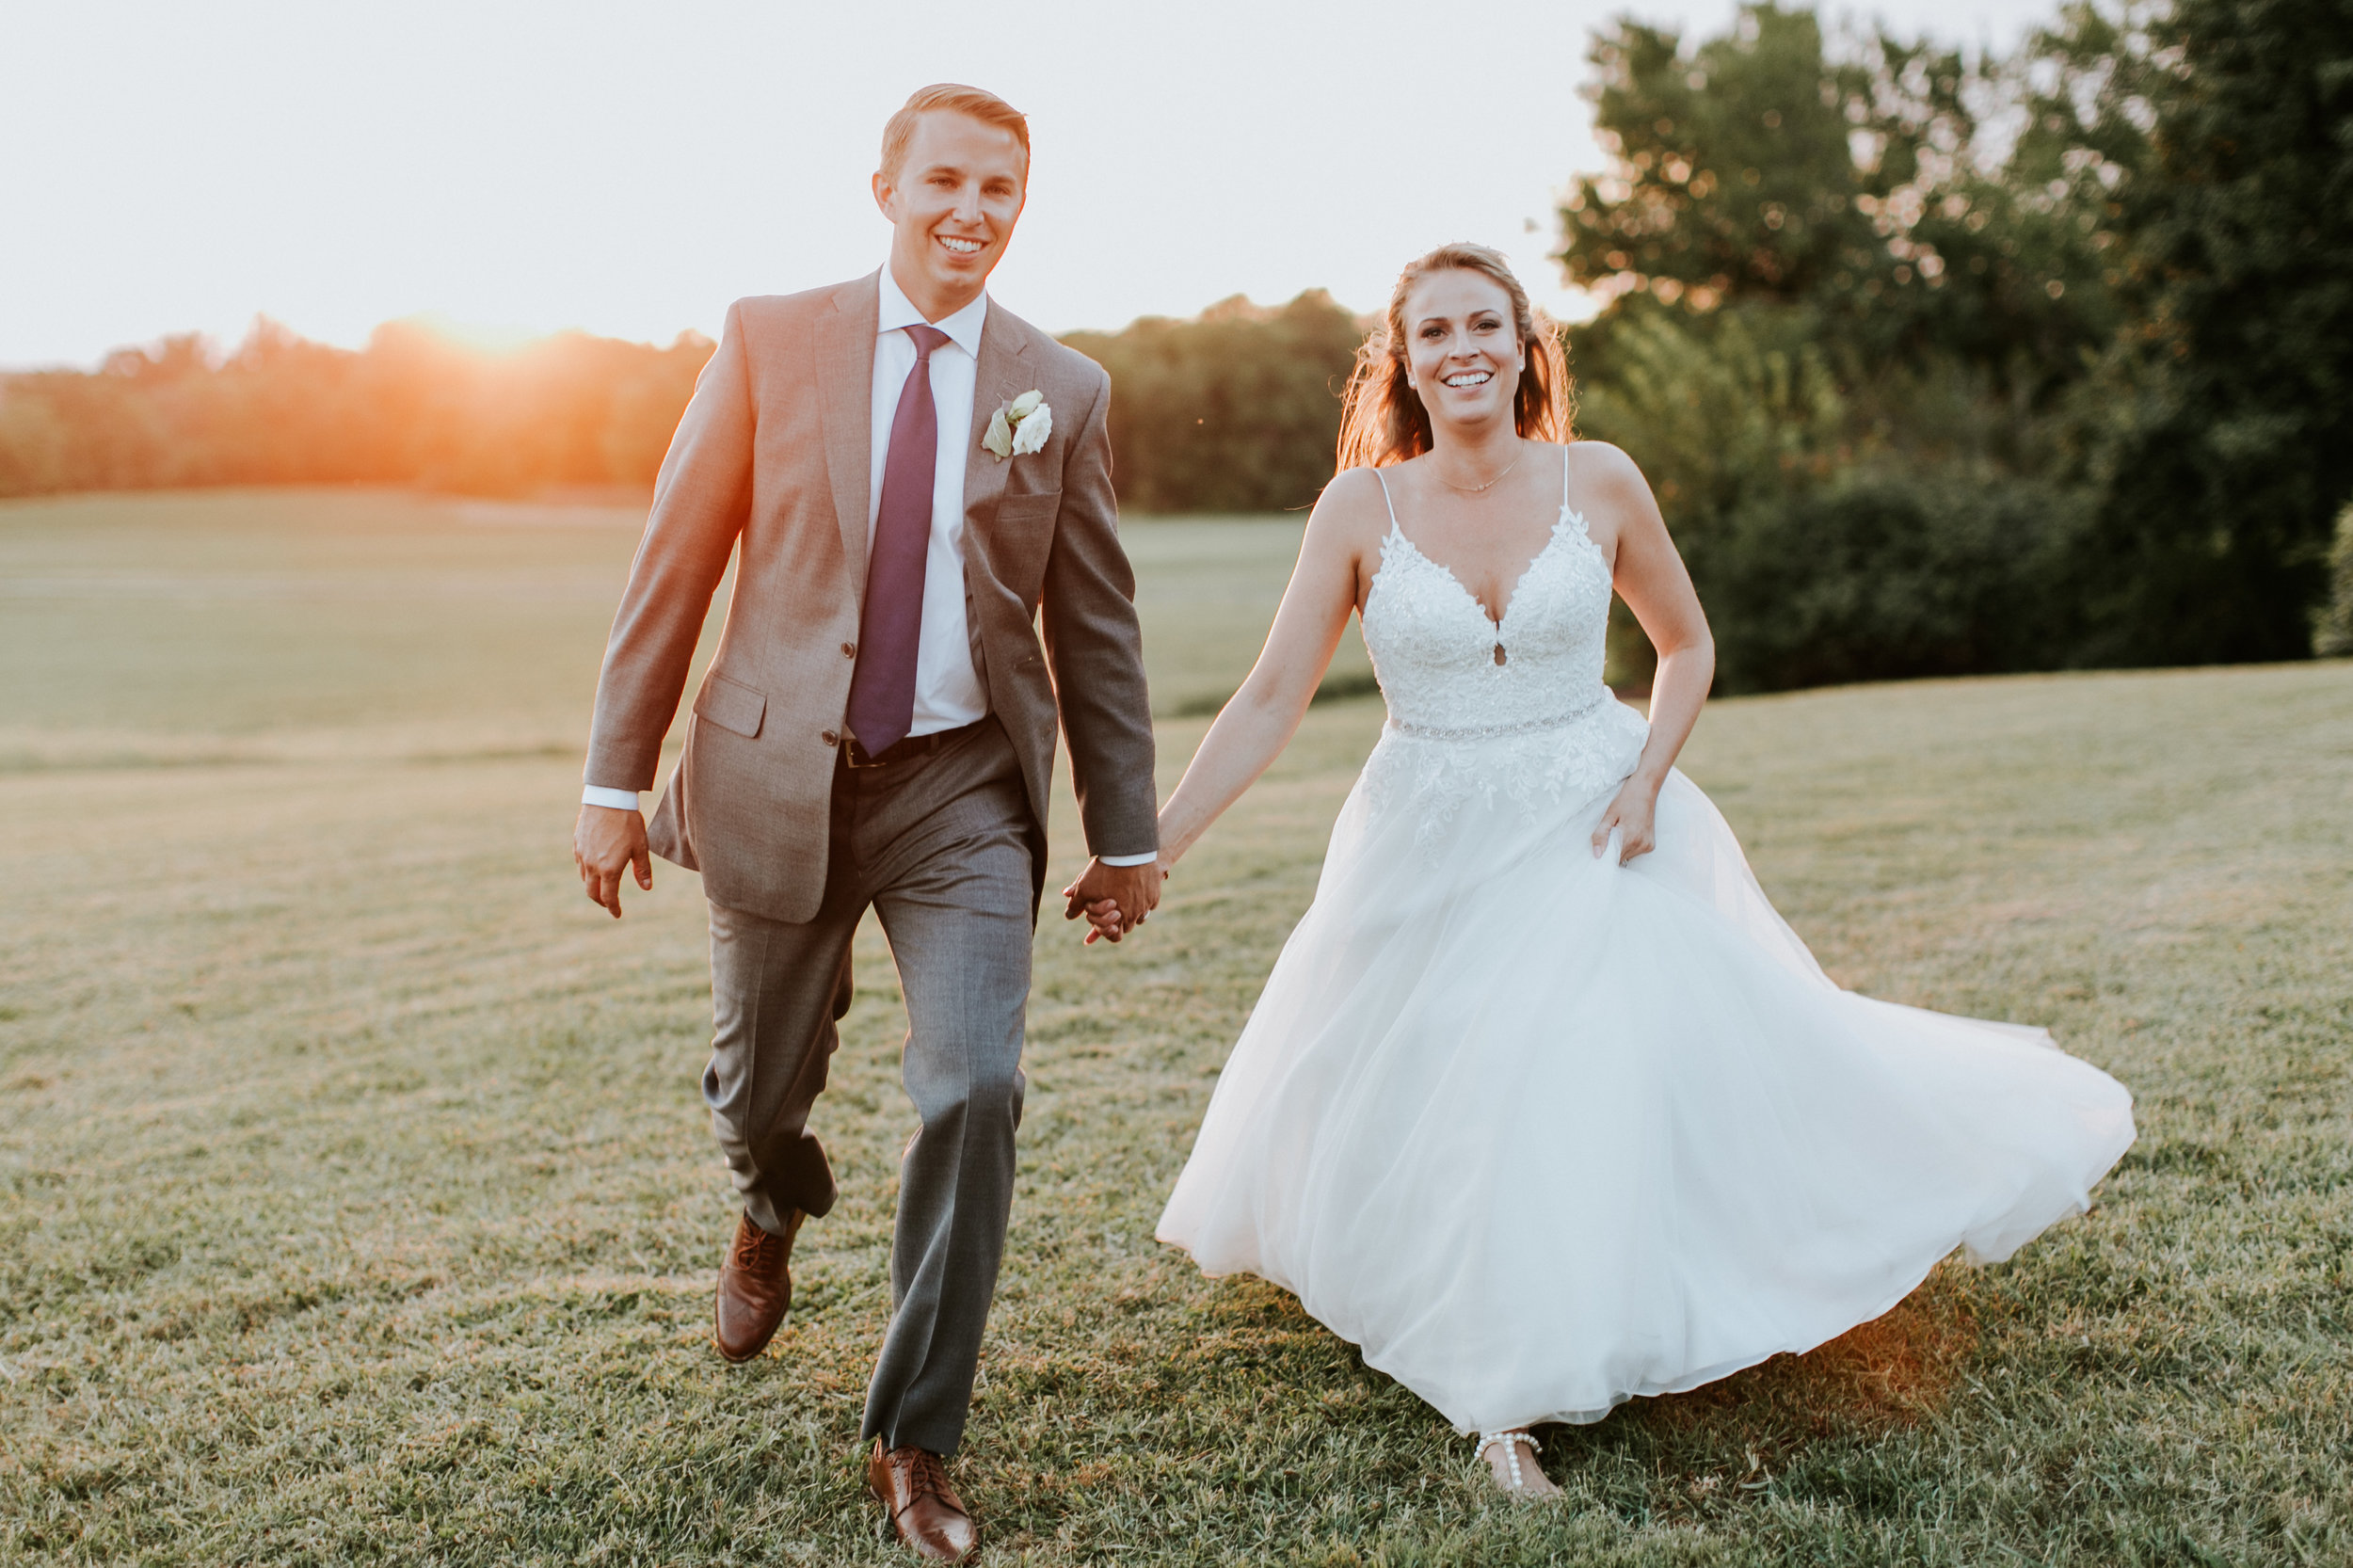 Rustic Oyster Themed Eastern Shore Maryland Outdoor Wedding by East Made Event Company Wedding Planner and Bekah Kay Creative1078.jpg